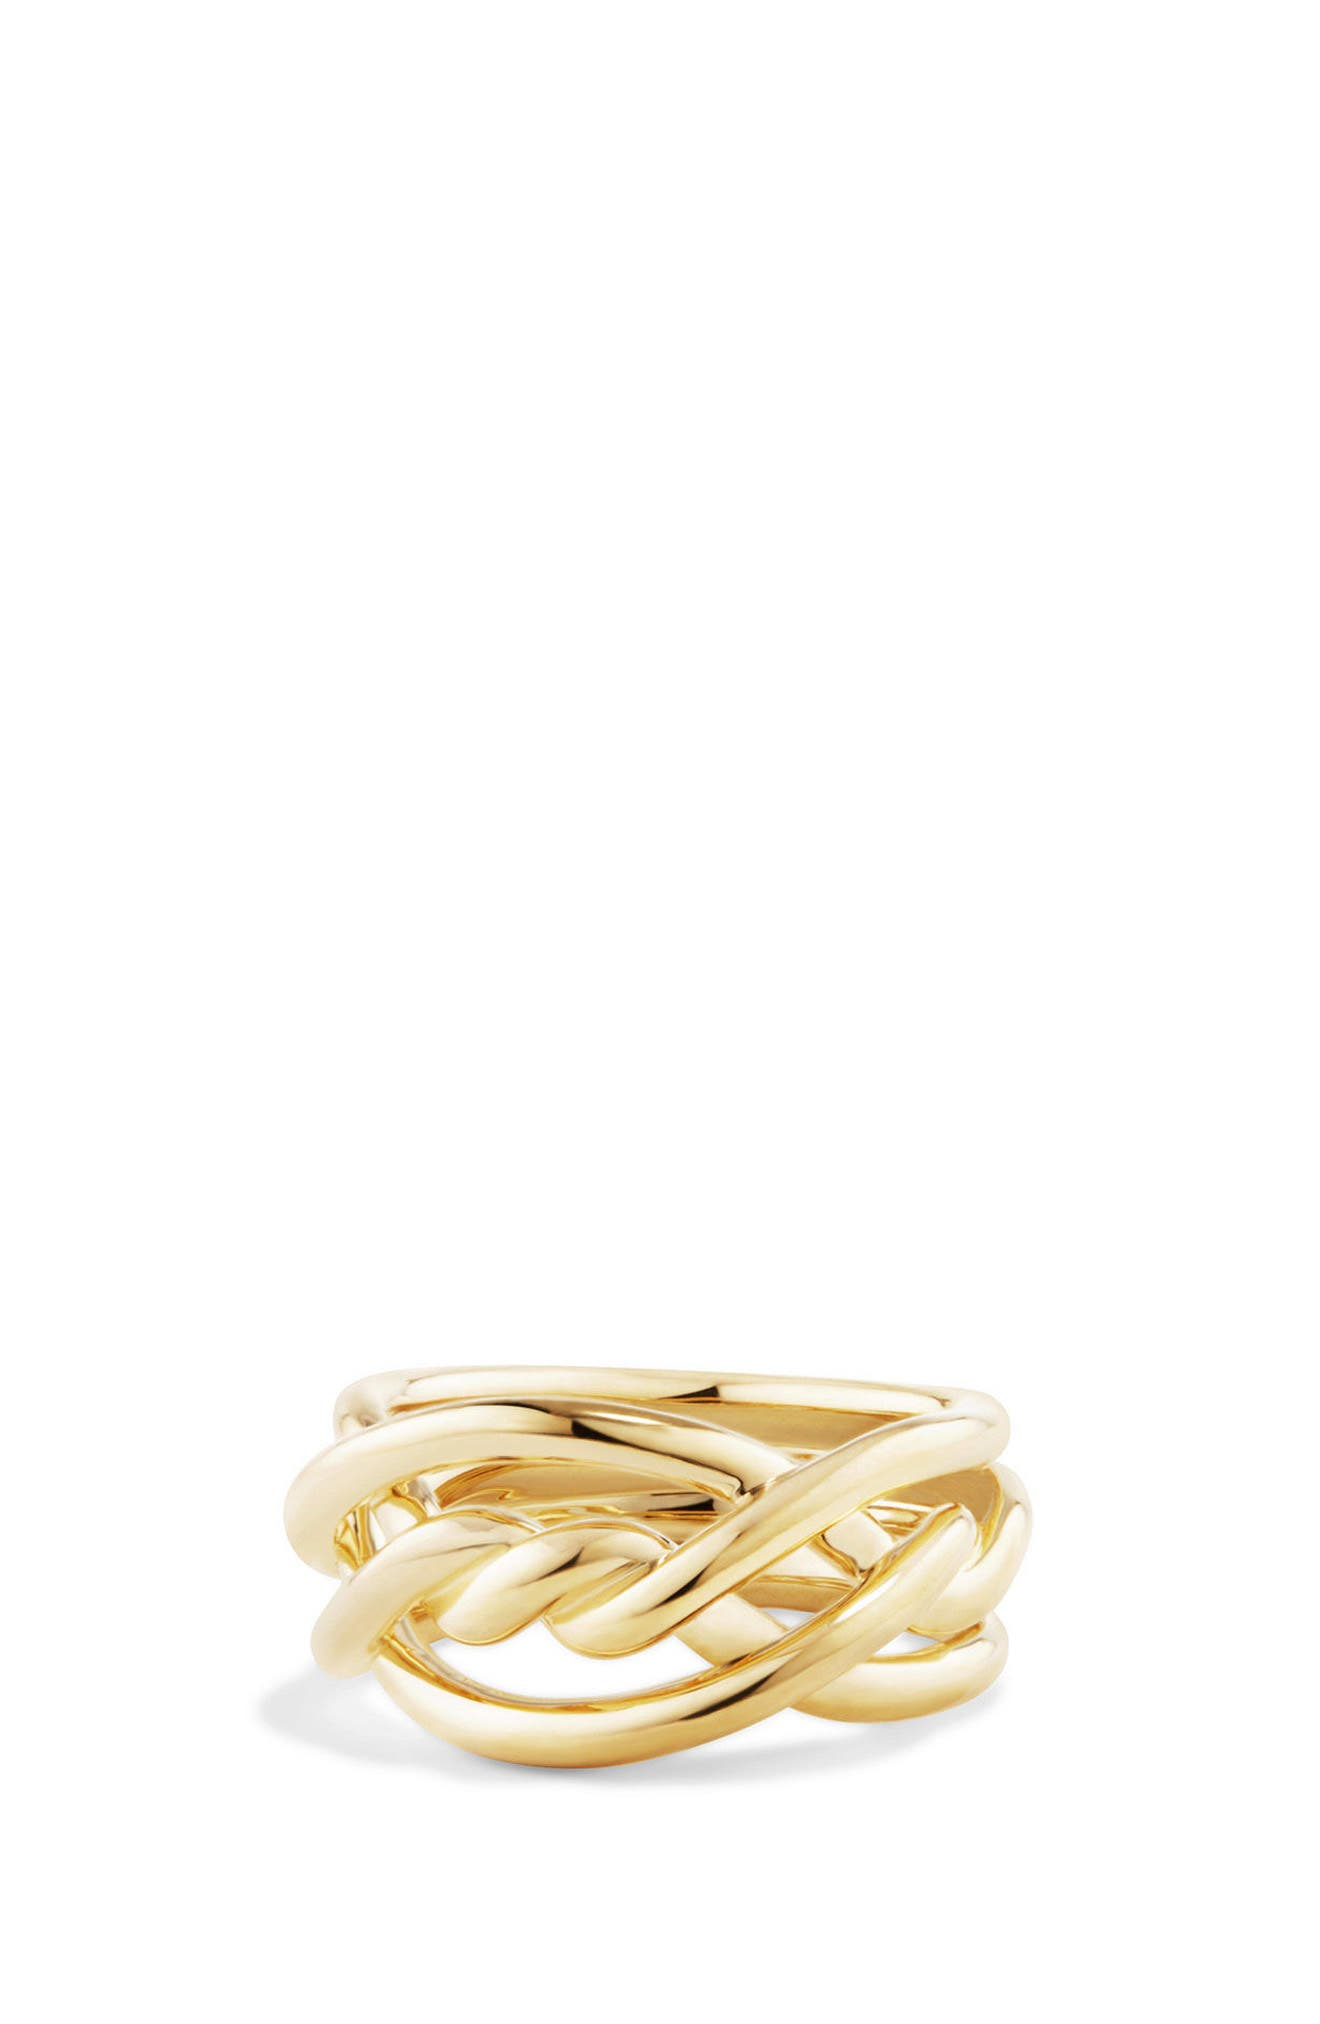 Continuance Ring in 18K Gold,                         Main,                         color, YELLOW GOLD